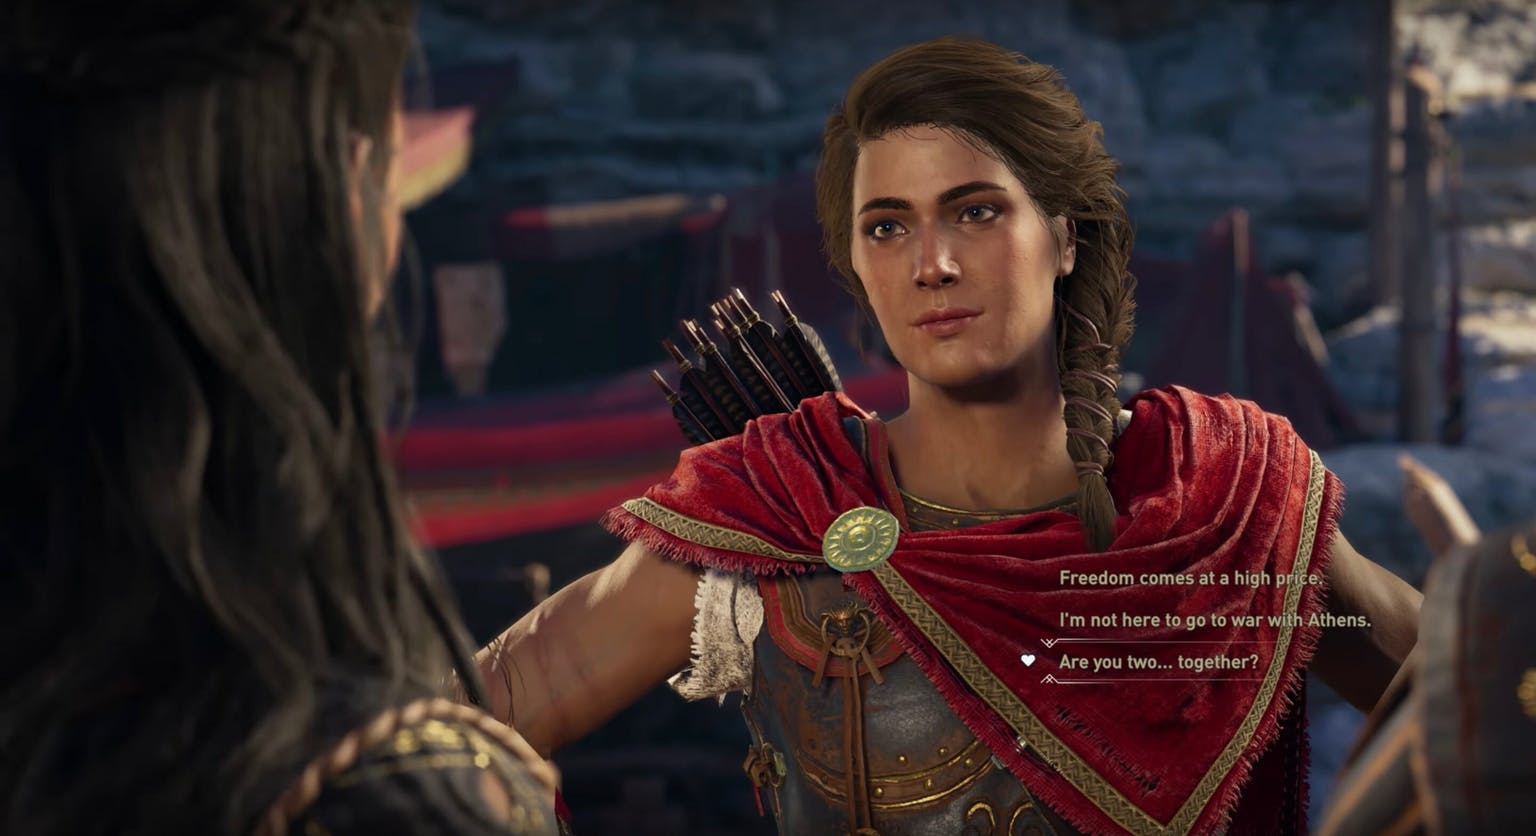 Assassins Creed: Odyssey Will Let You Flirt With Same-Sex Characters